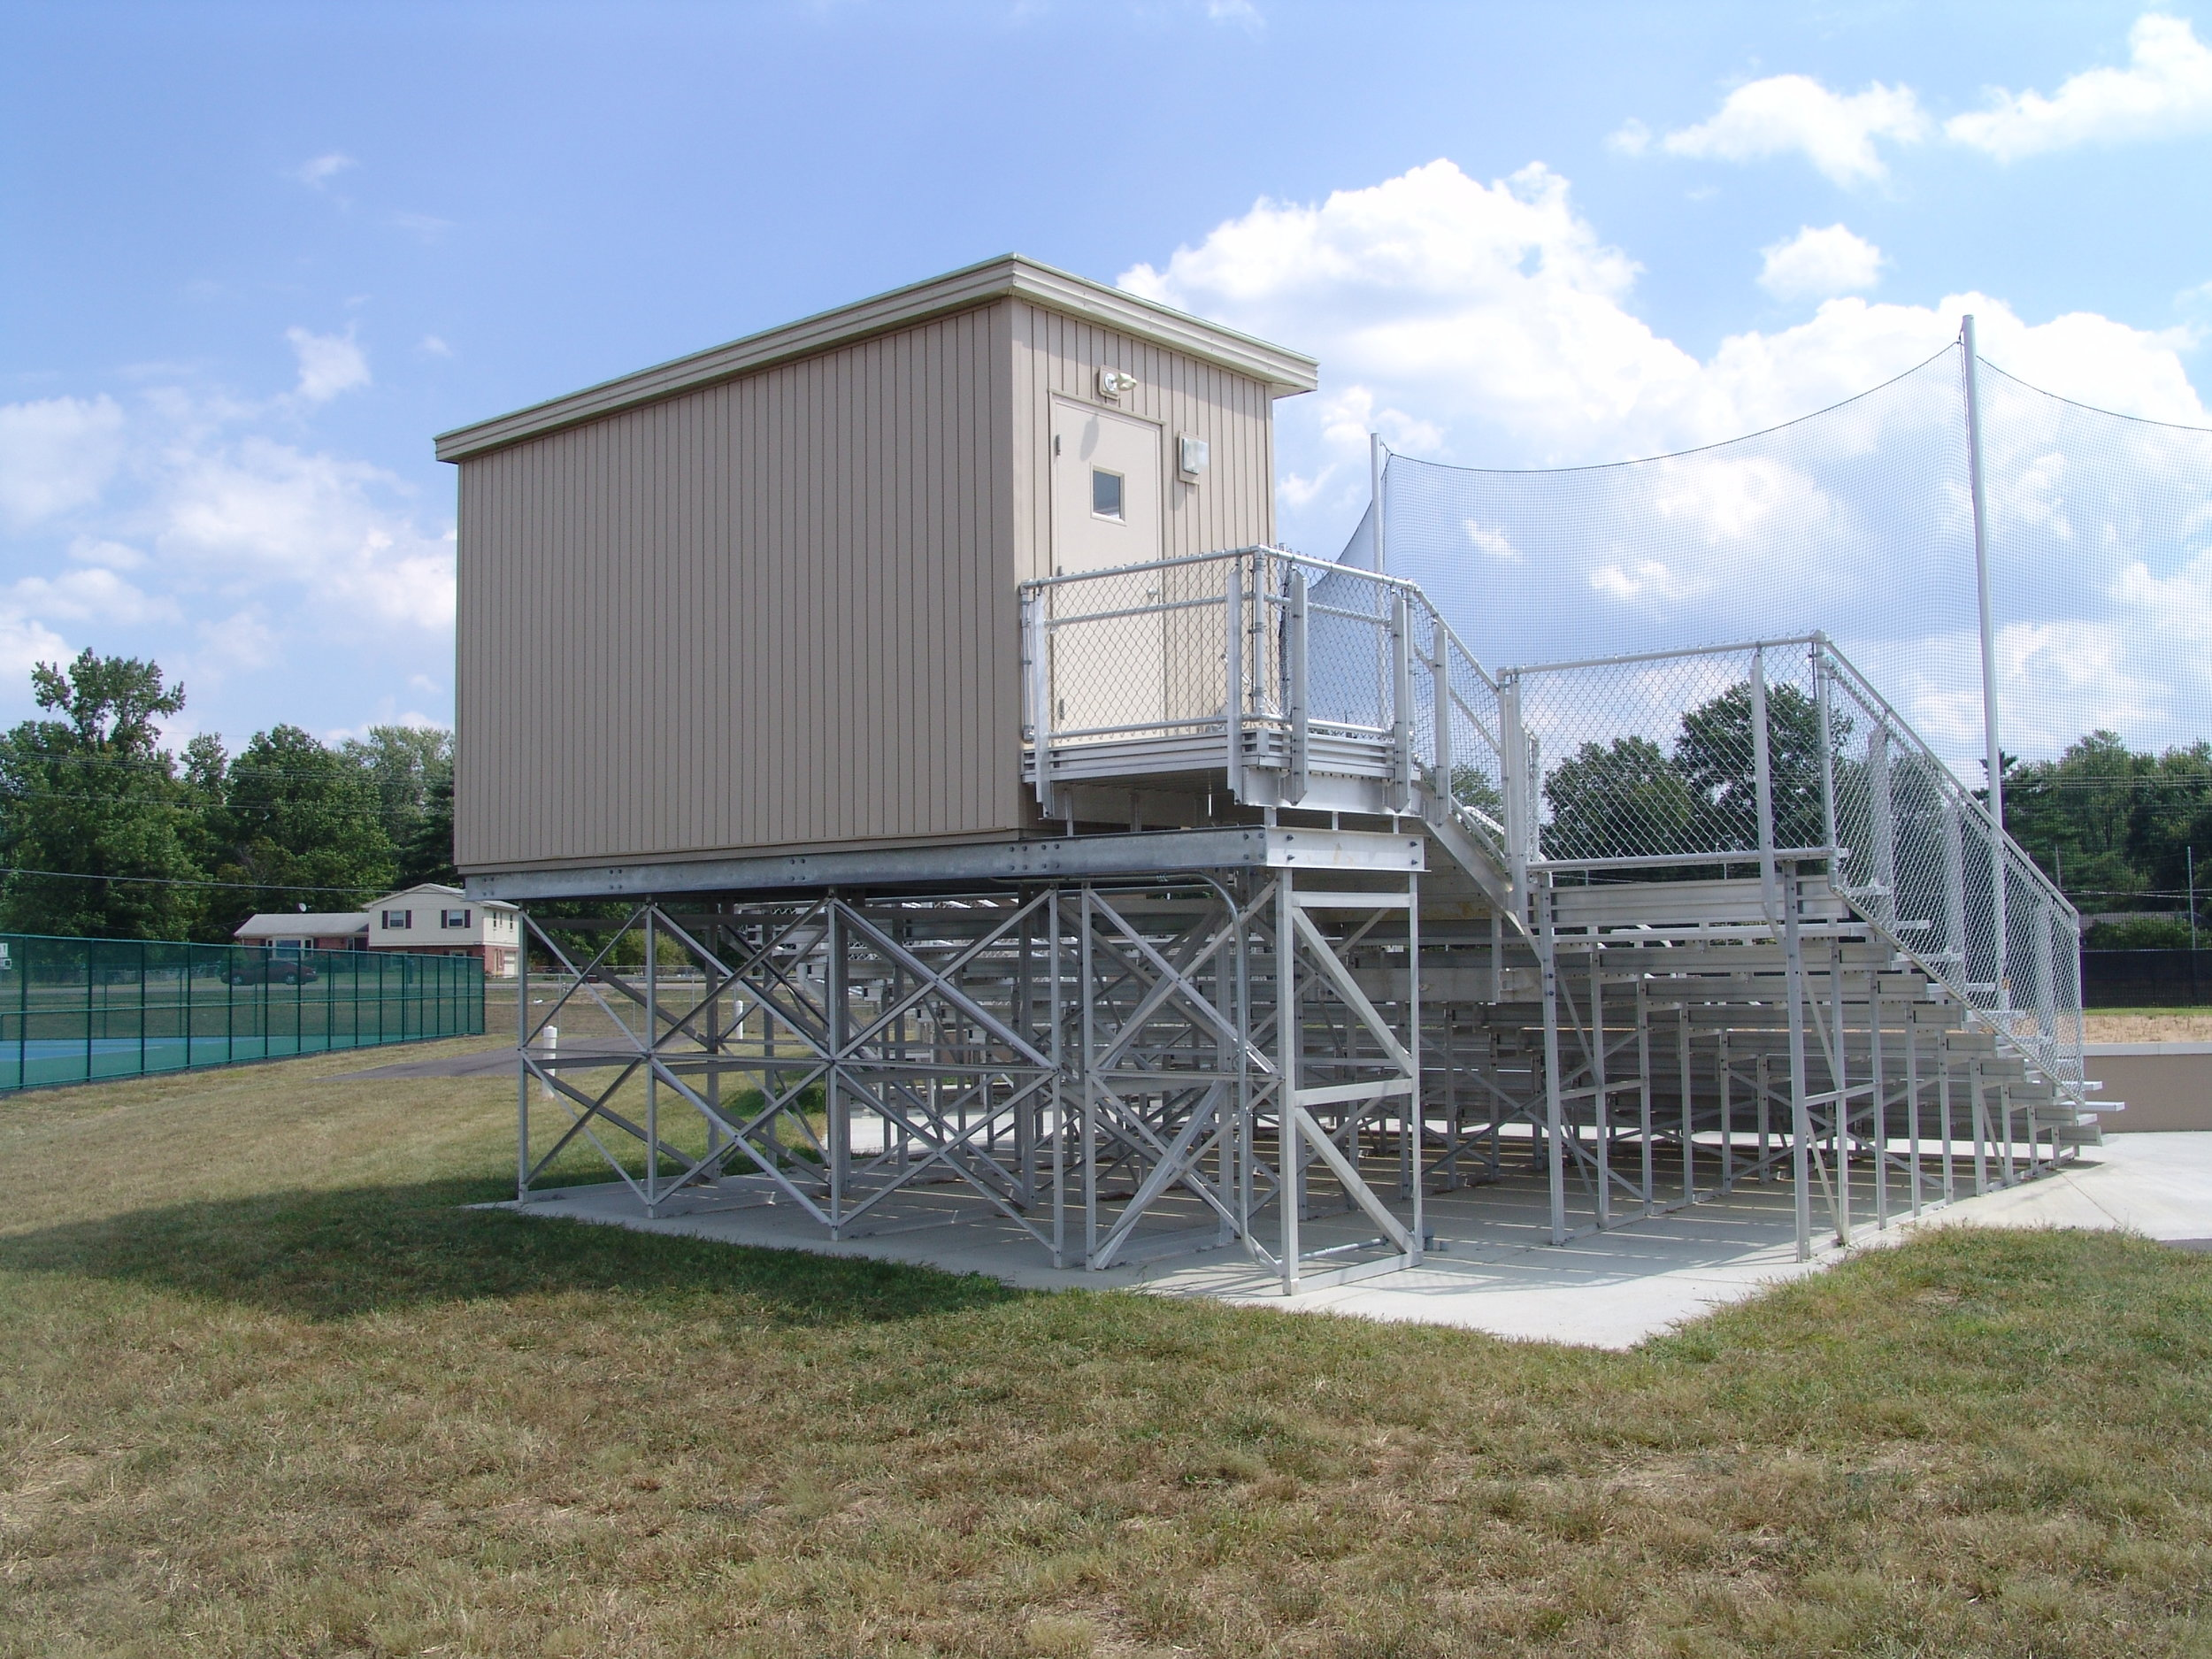 8'W x 18'L Press Box on Aluminum Understructure, View 1